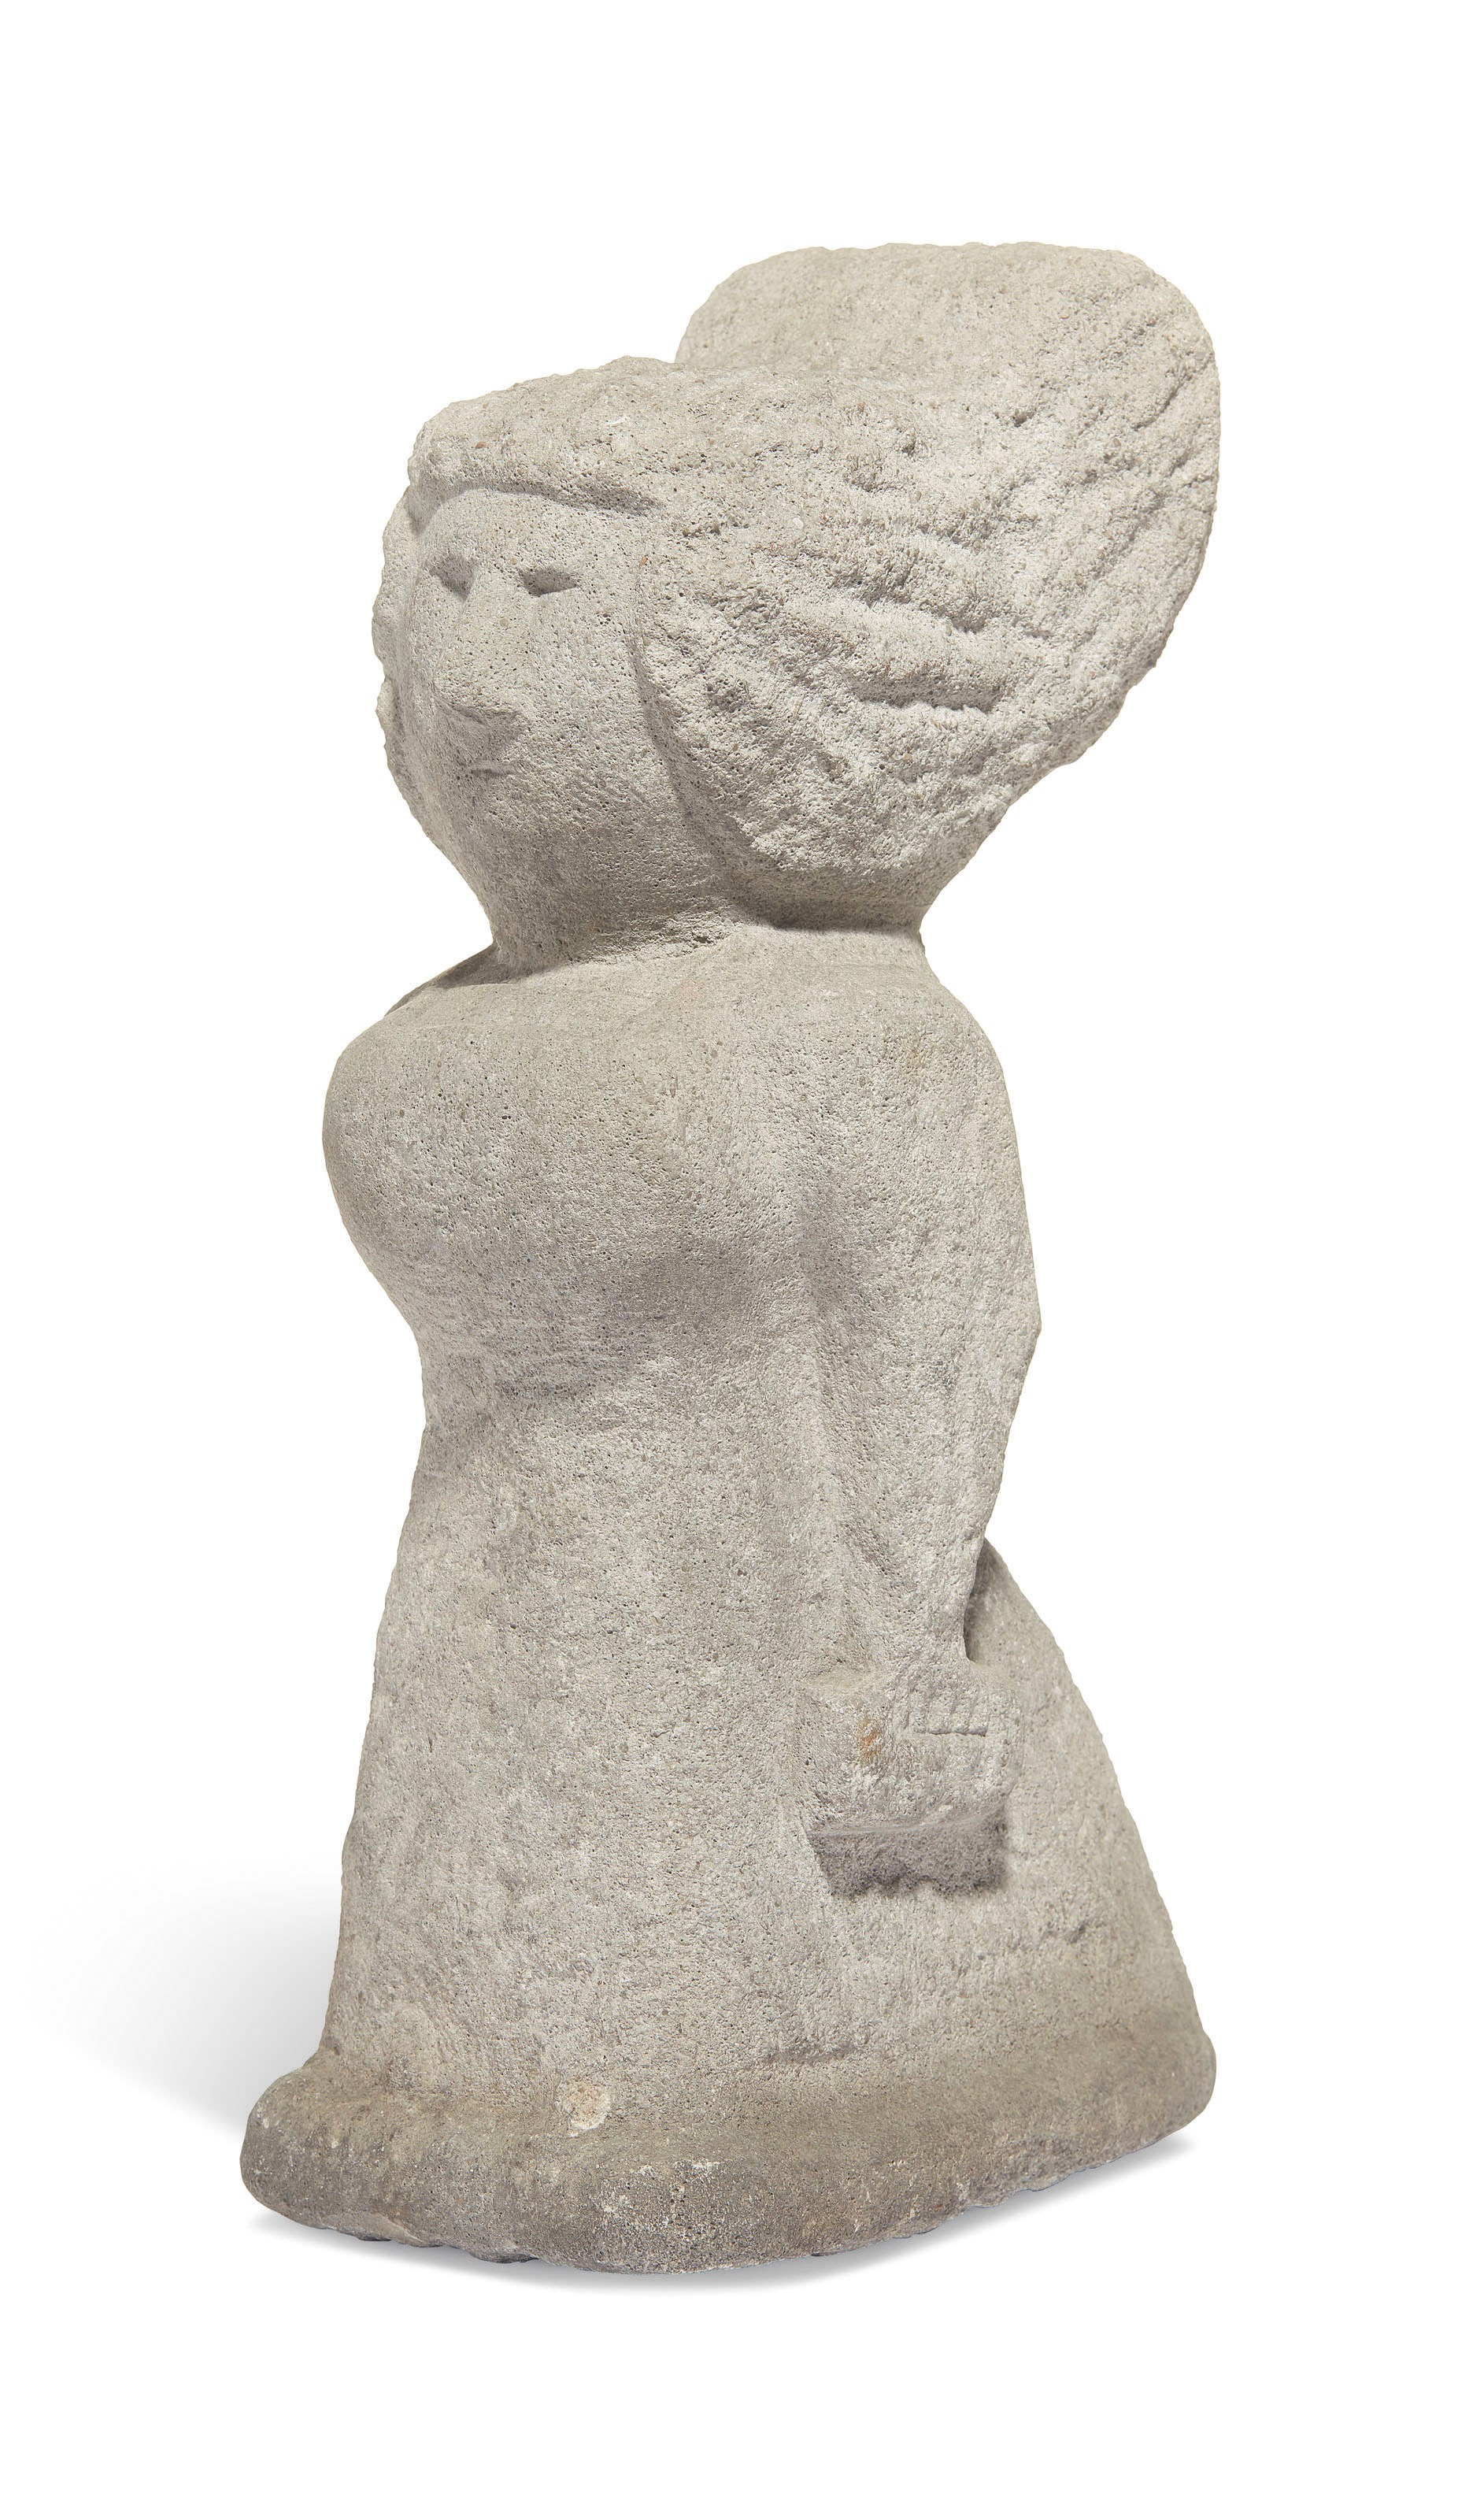 William Edmondson (1874-1951), Lady, 1930s. Sold for $237,500 on 18 January 2019 at Christie's in New York